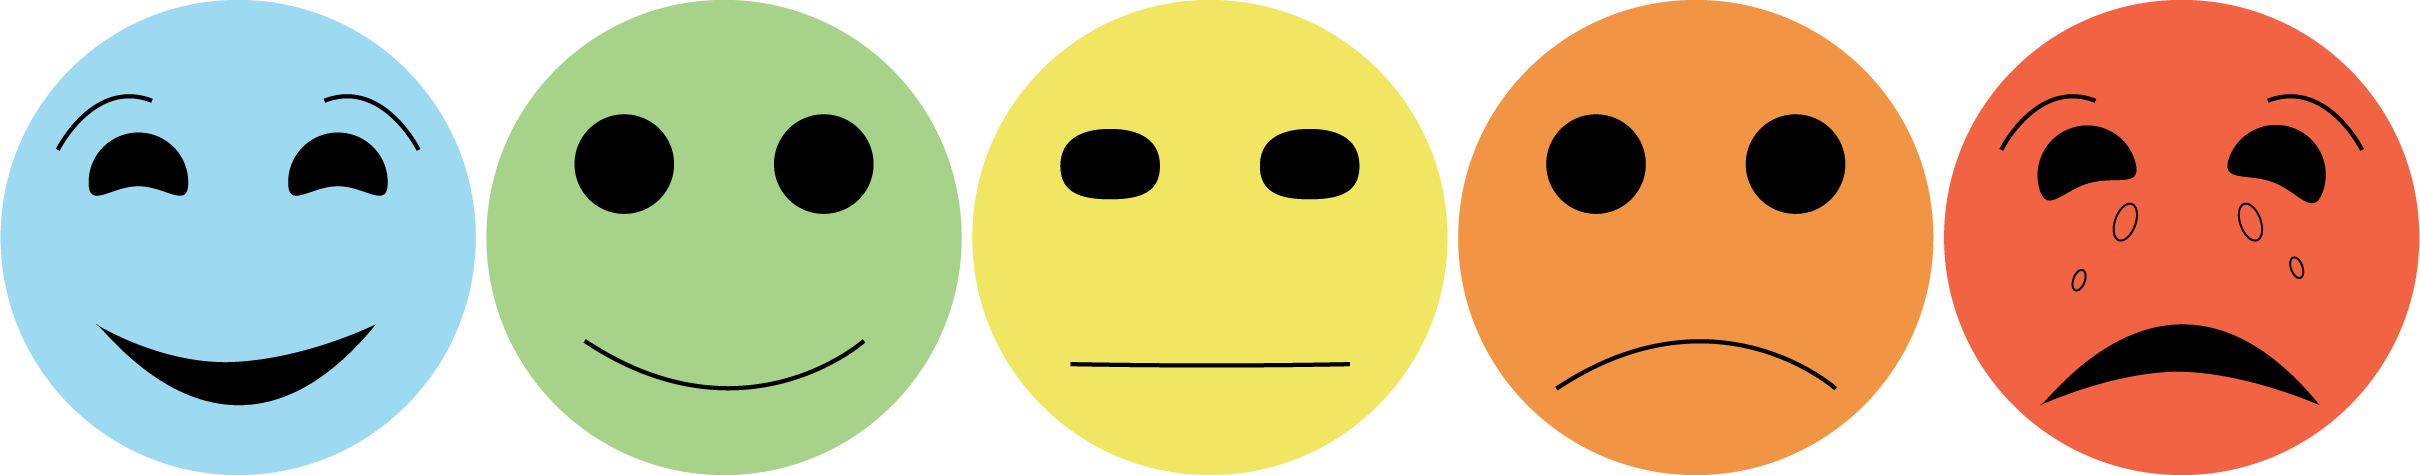 Pain scale represented by face icons used for medical diagnostics.